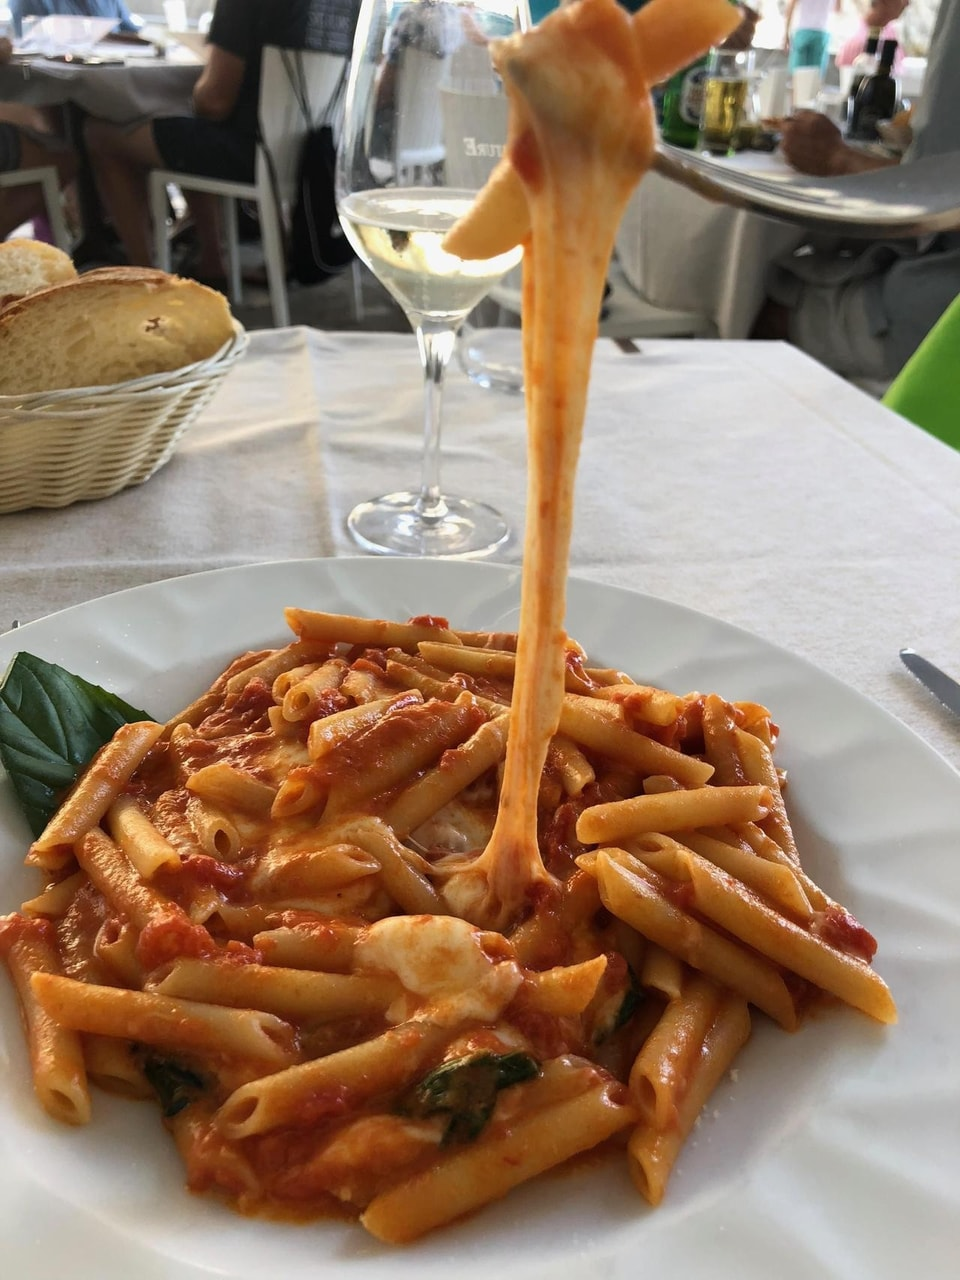 cheese, pasta, wine and tomato sauce